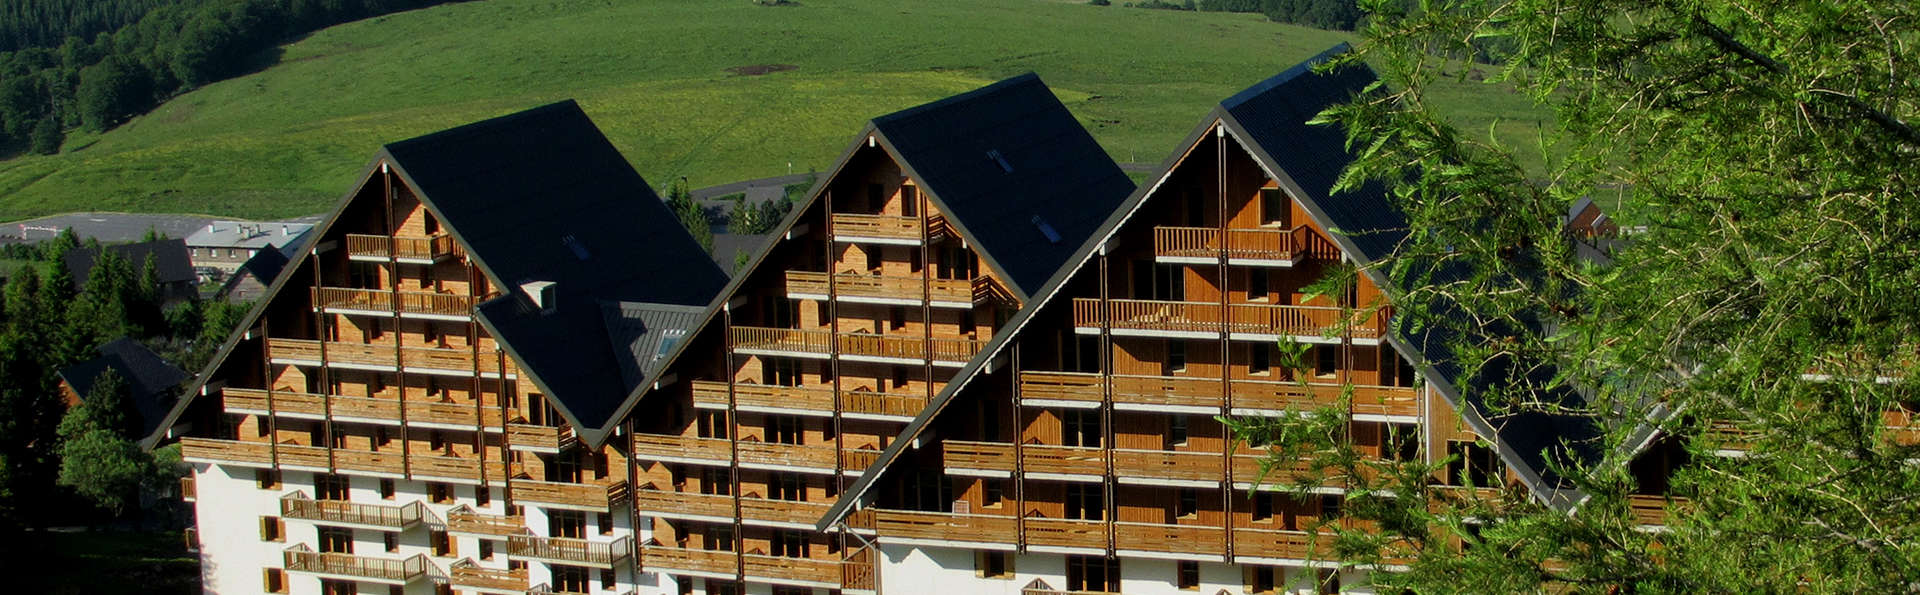 Chalets du Sancy - Edit_Front2.jpg